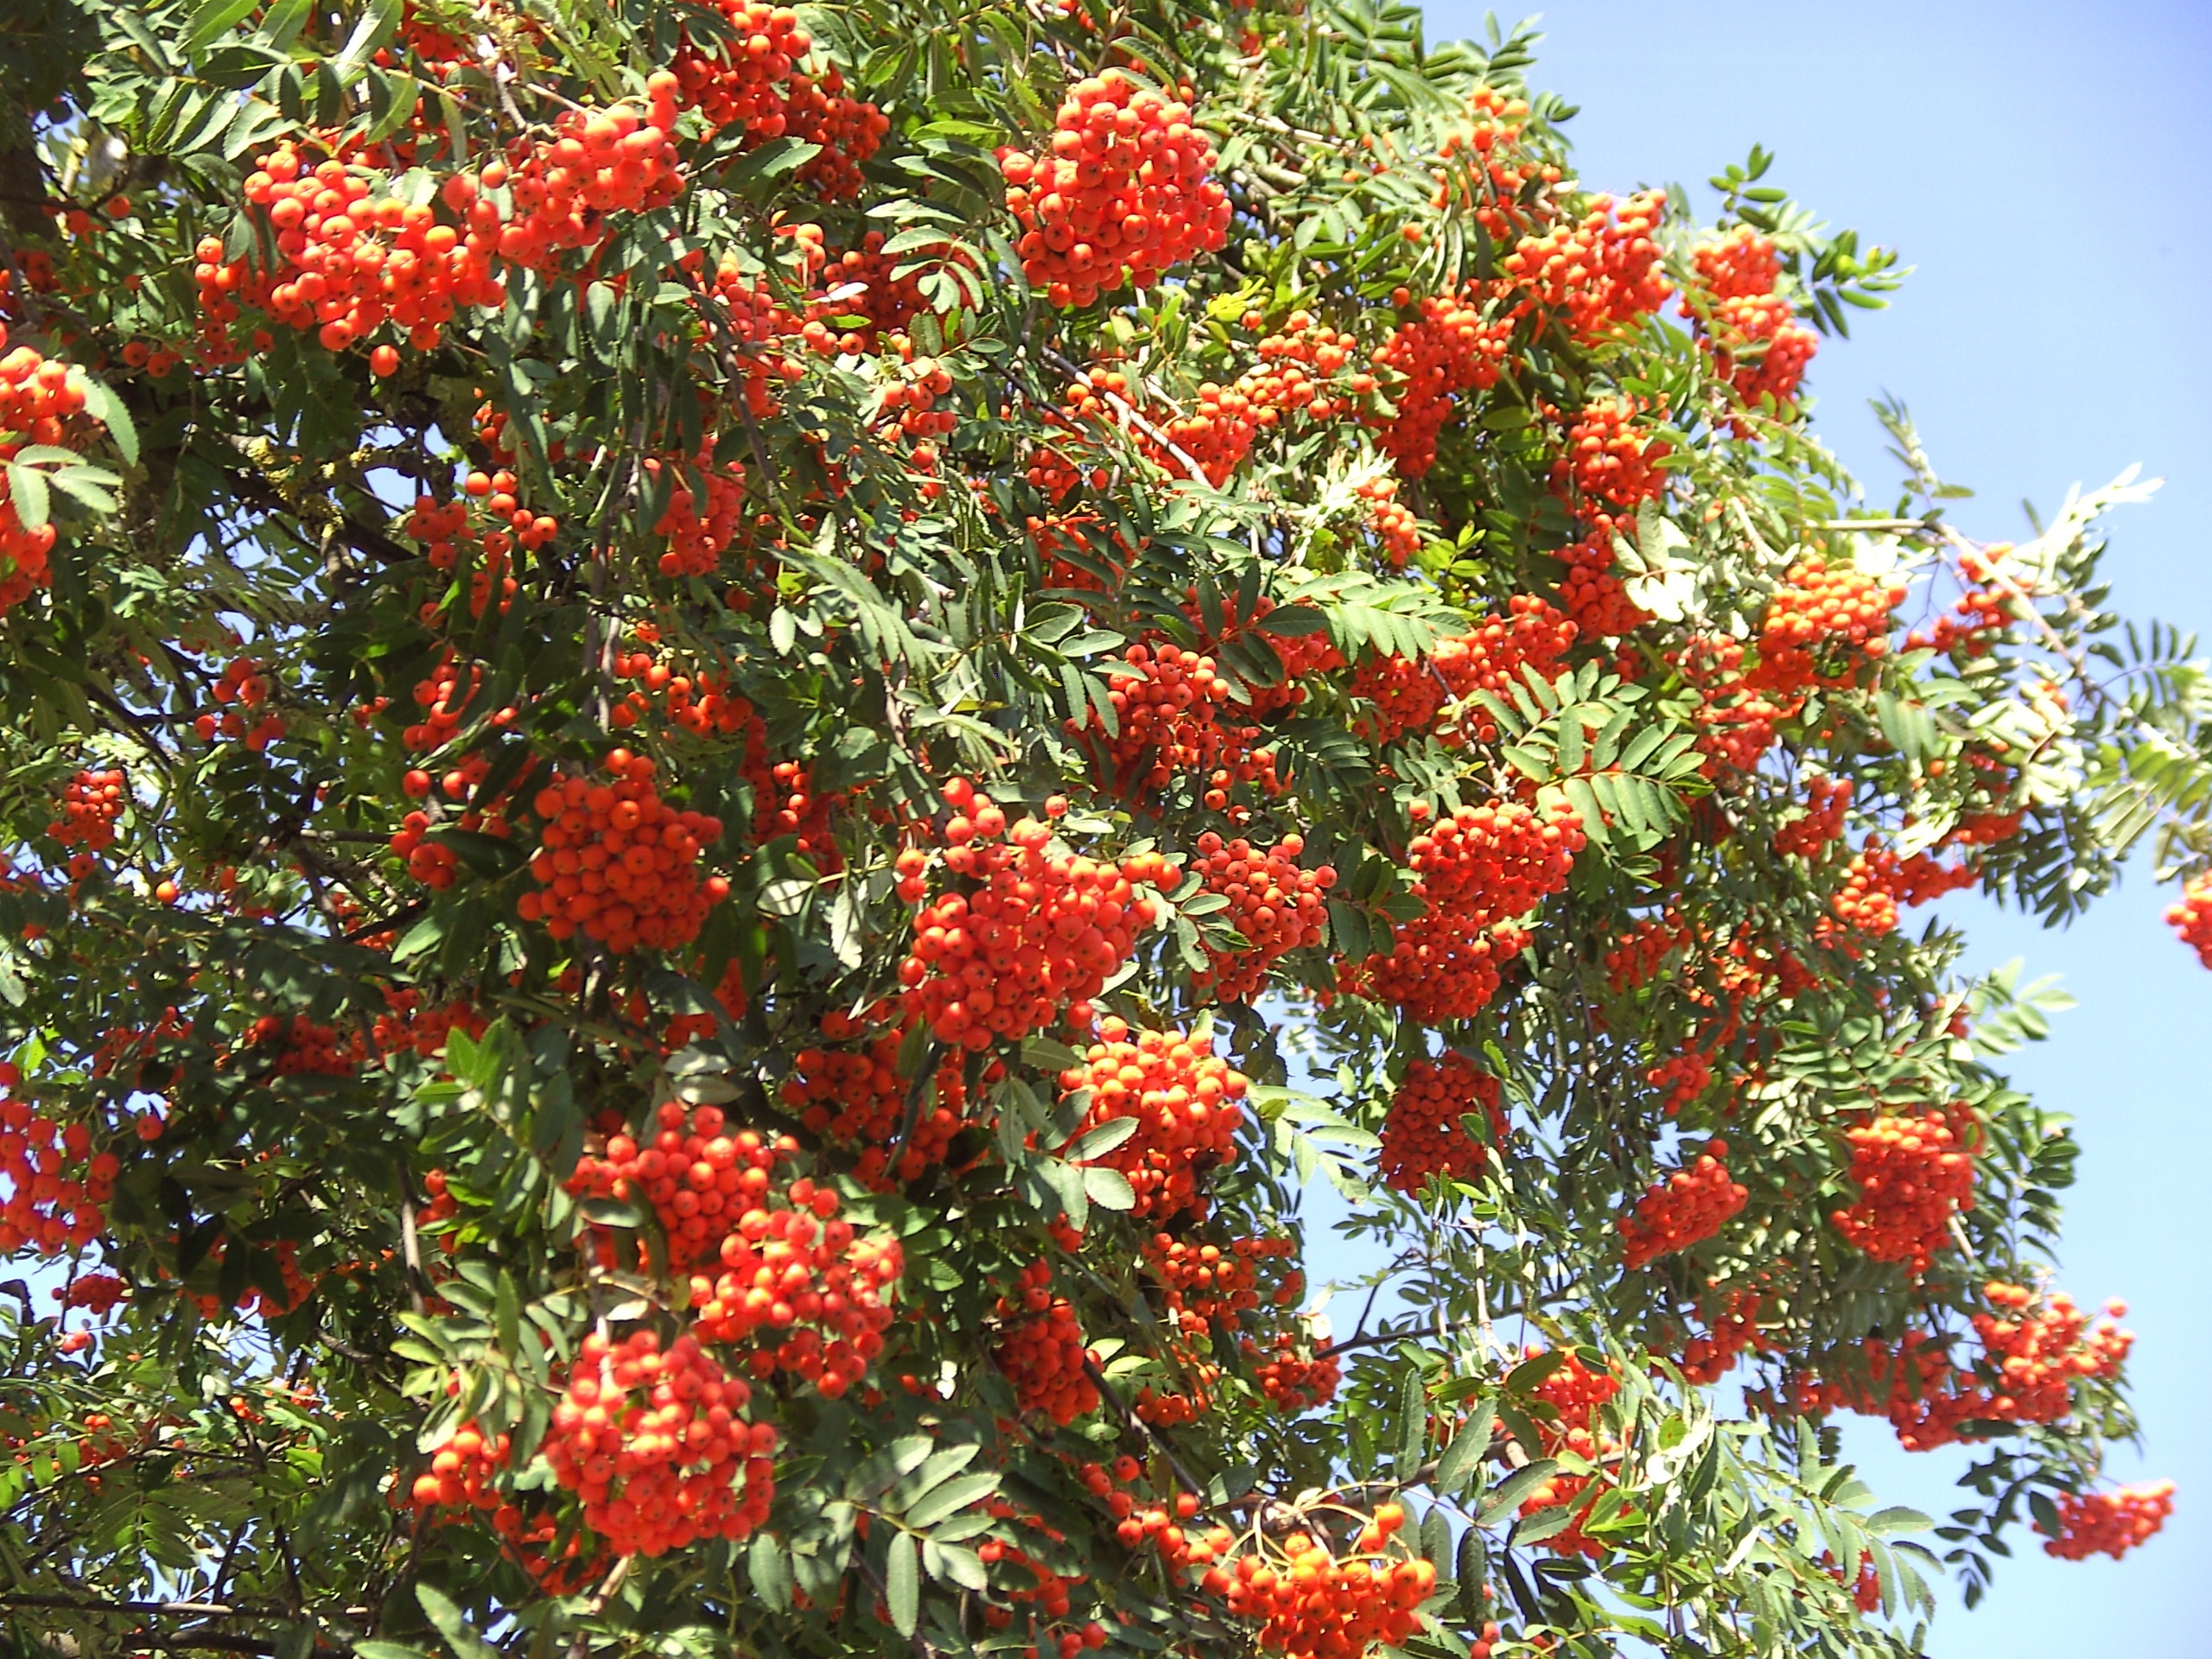 Rowan Tree With Red Berries In Autumn Free Image